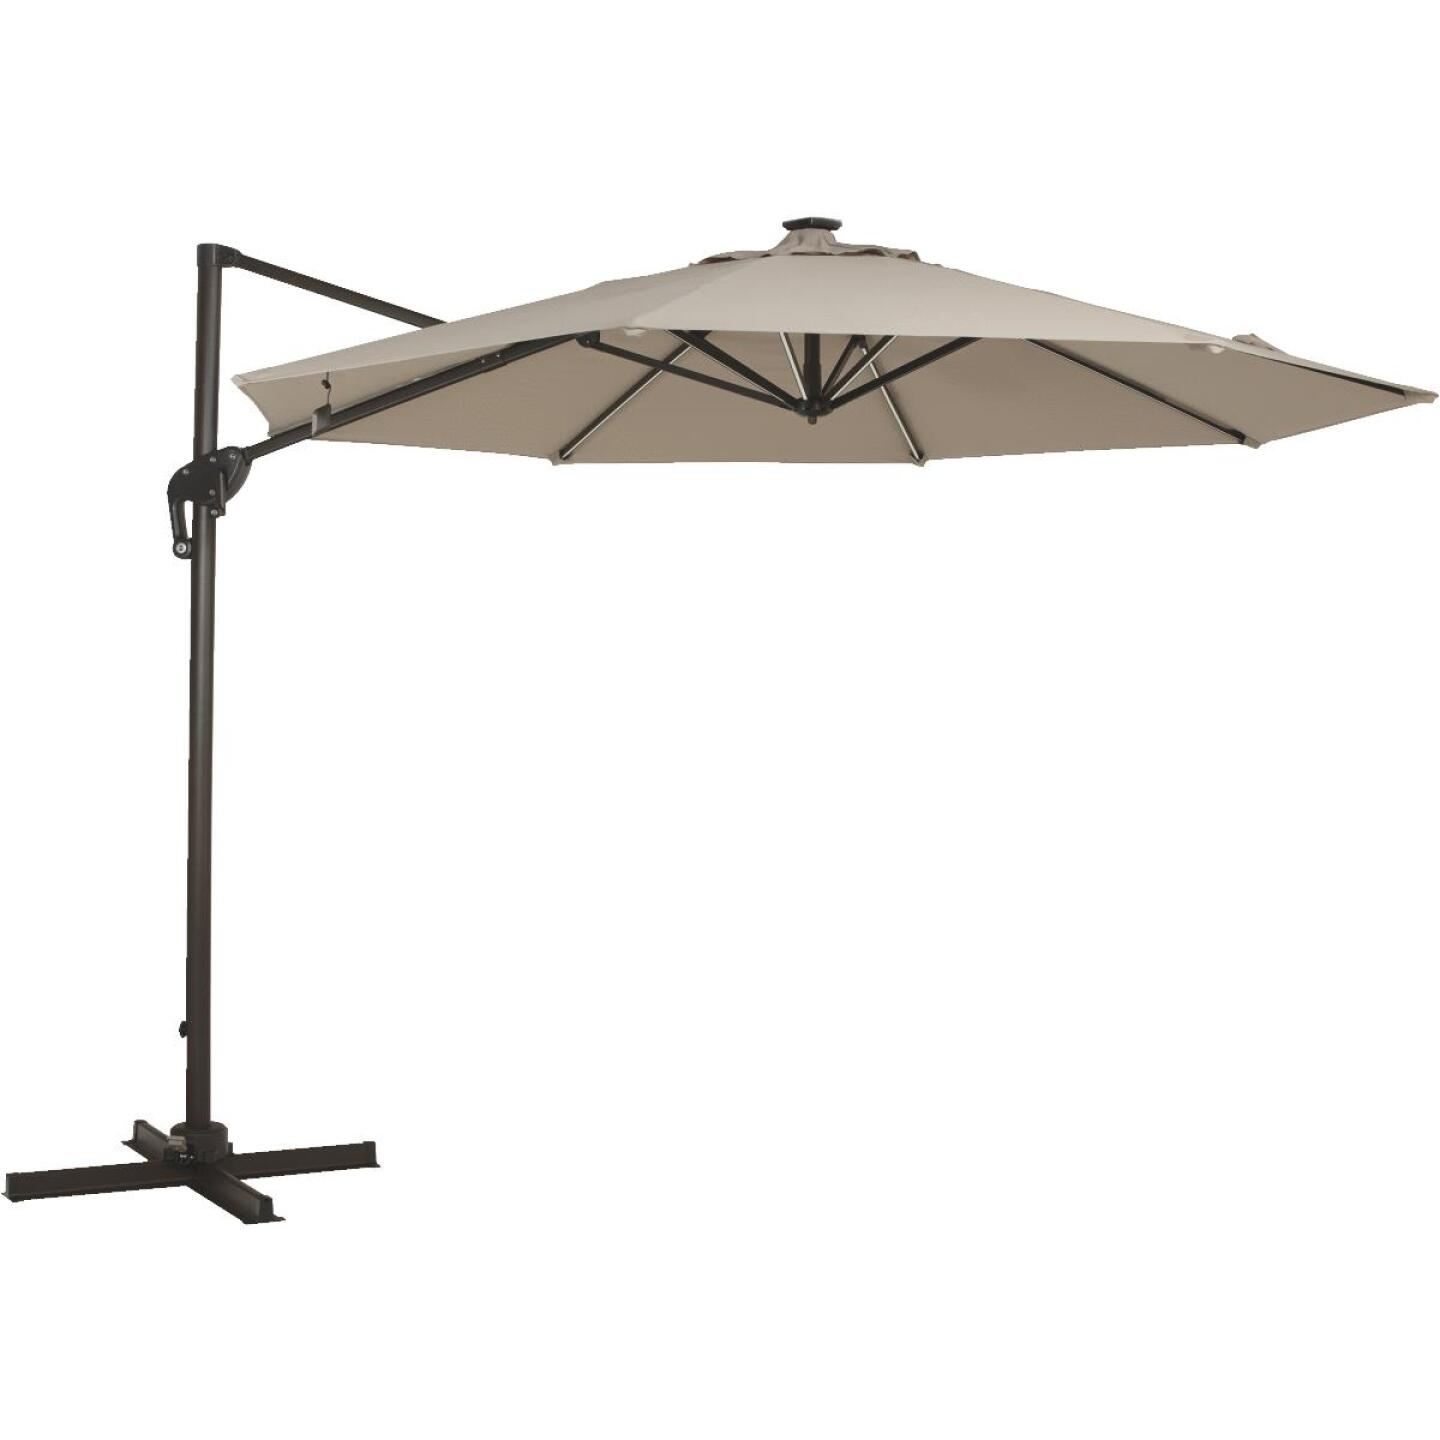 Outdoor Expressions 10 Ft. Offset Cream Patio Umbrella with Solar LED Light Image 1